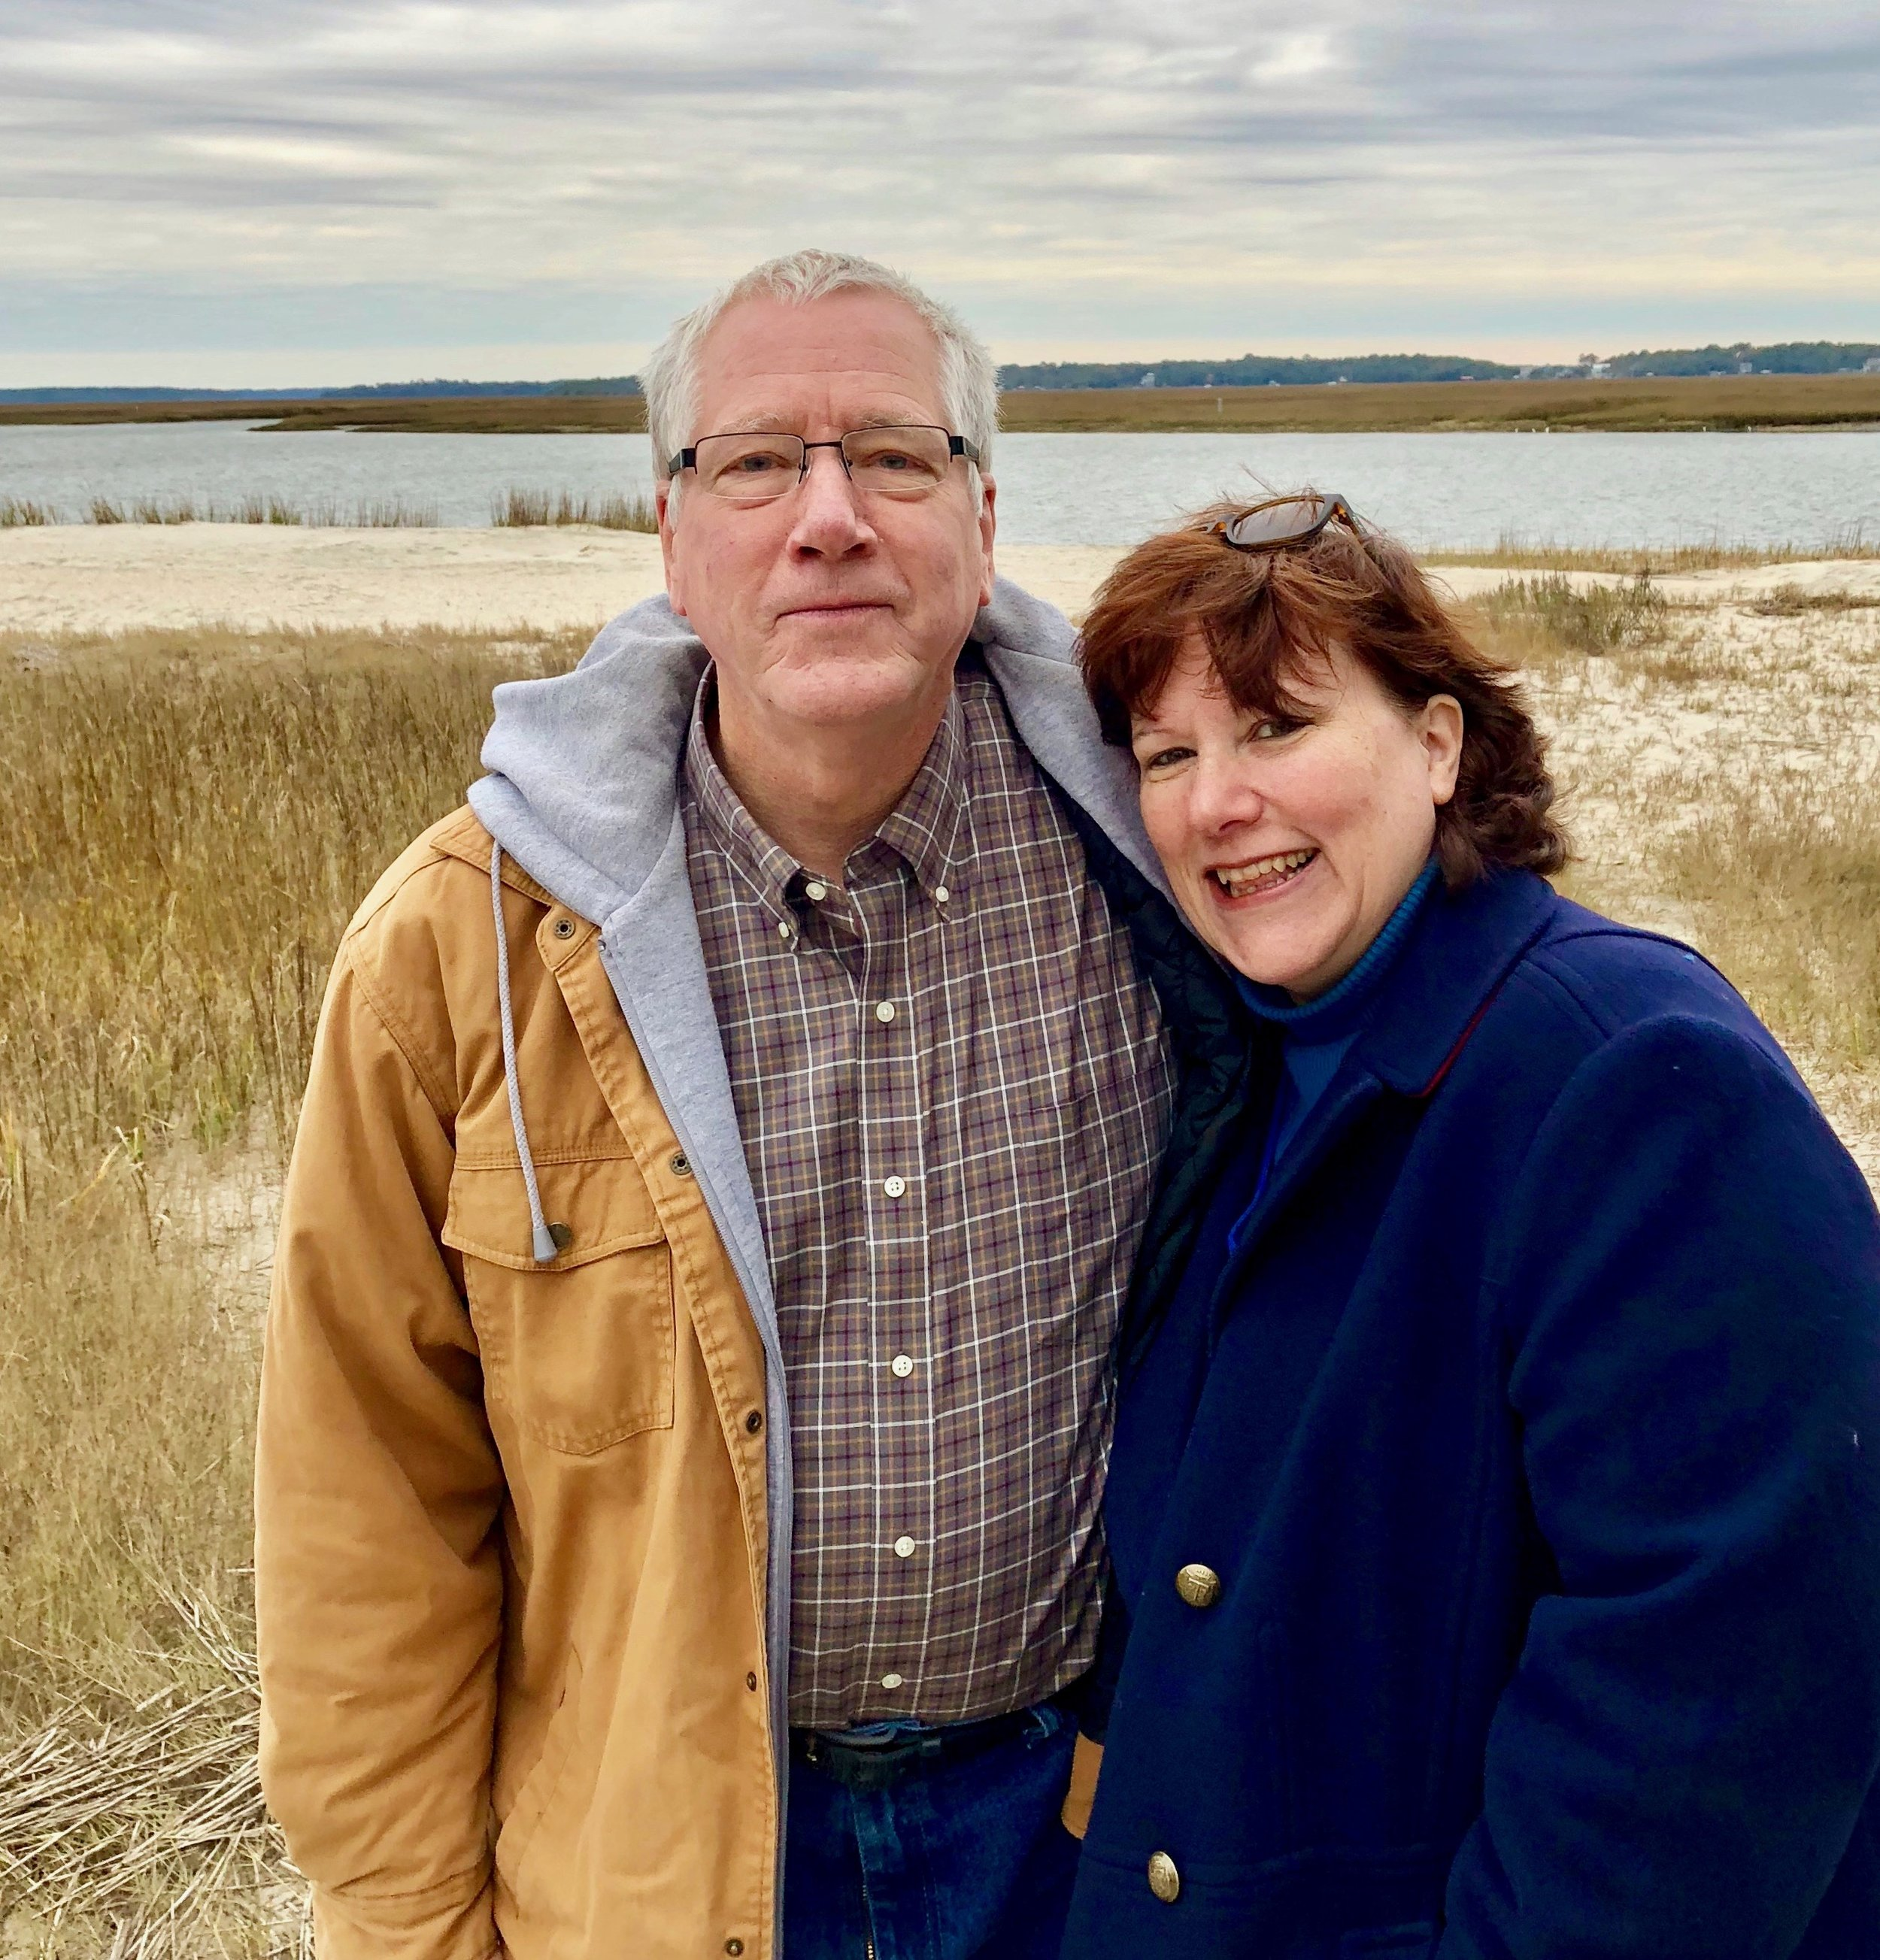 William & Pamela at Edisto Beach